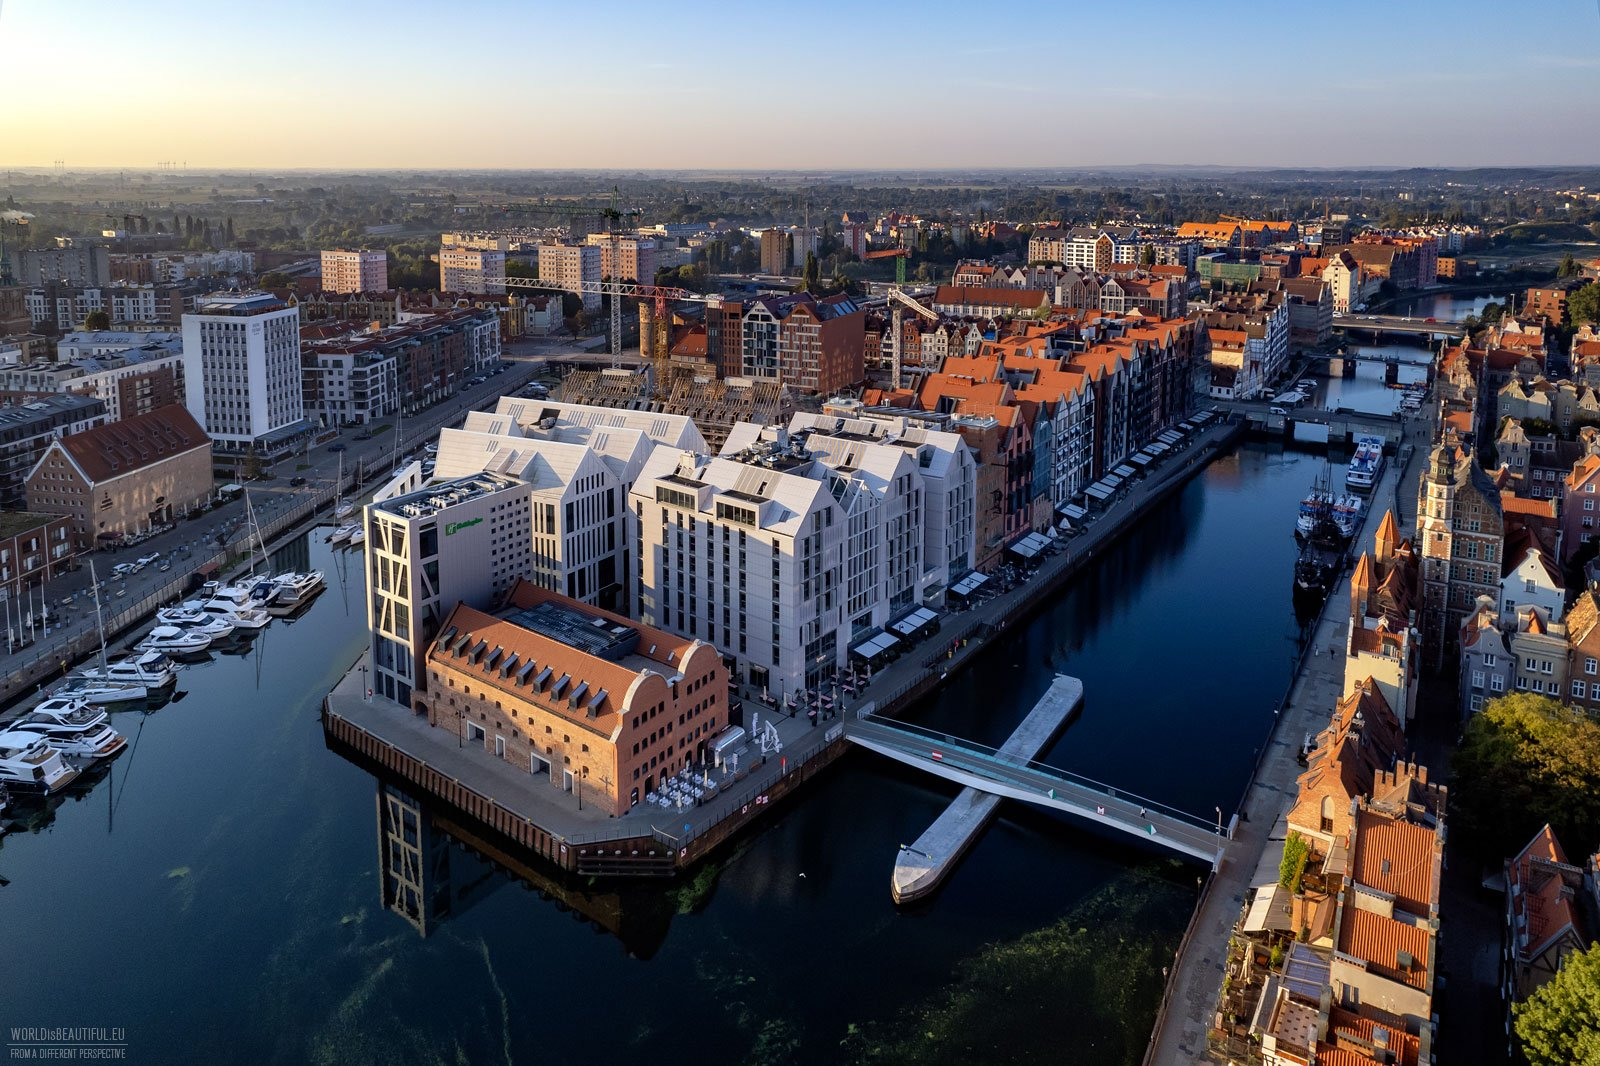 Hotels and restaurants in the center of Gdańsk